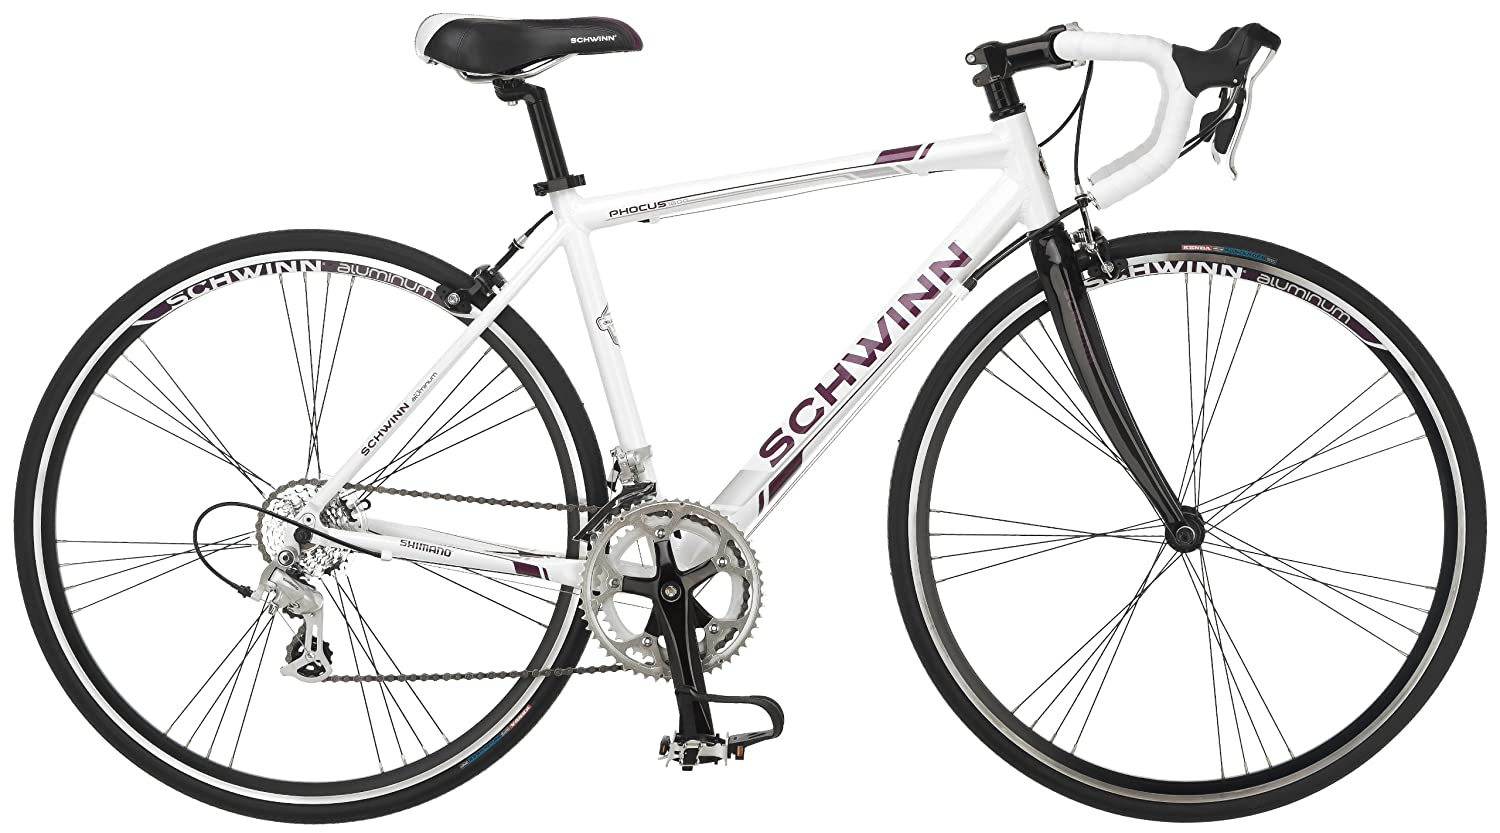 Bike Hybrid T1000 21 Spd Shogun Kent 700 Bar Road Bicycle White